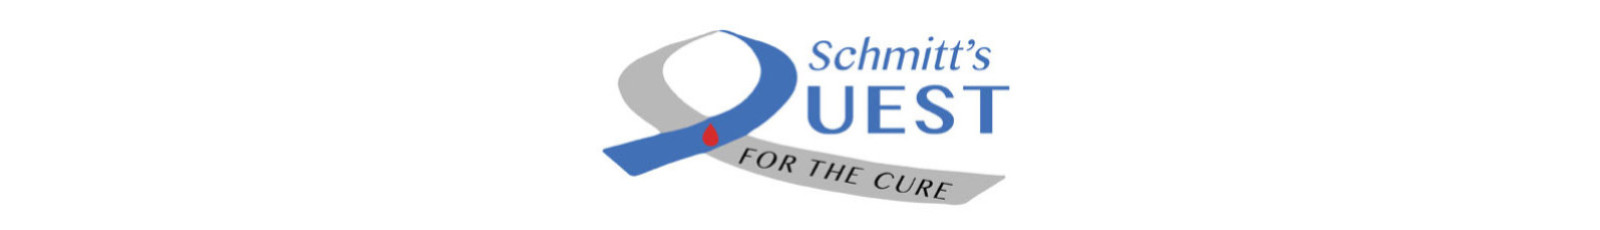 Schmitts' Quest for the Cure